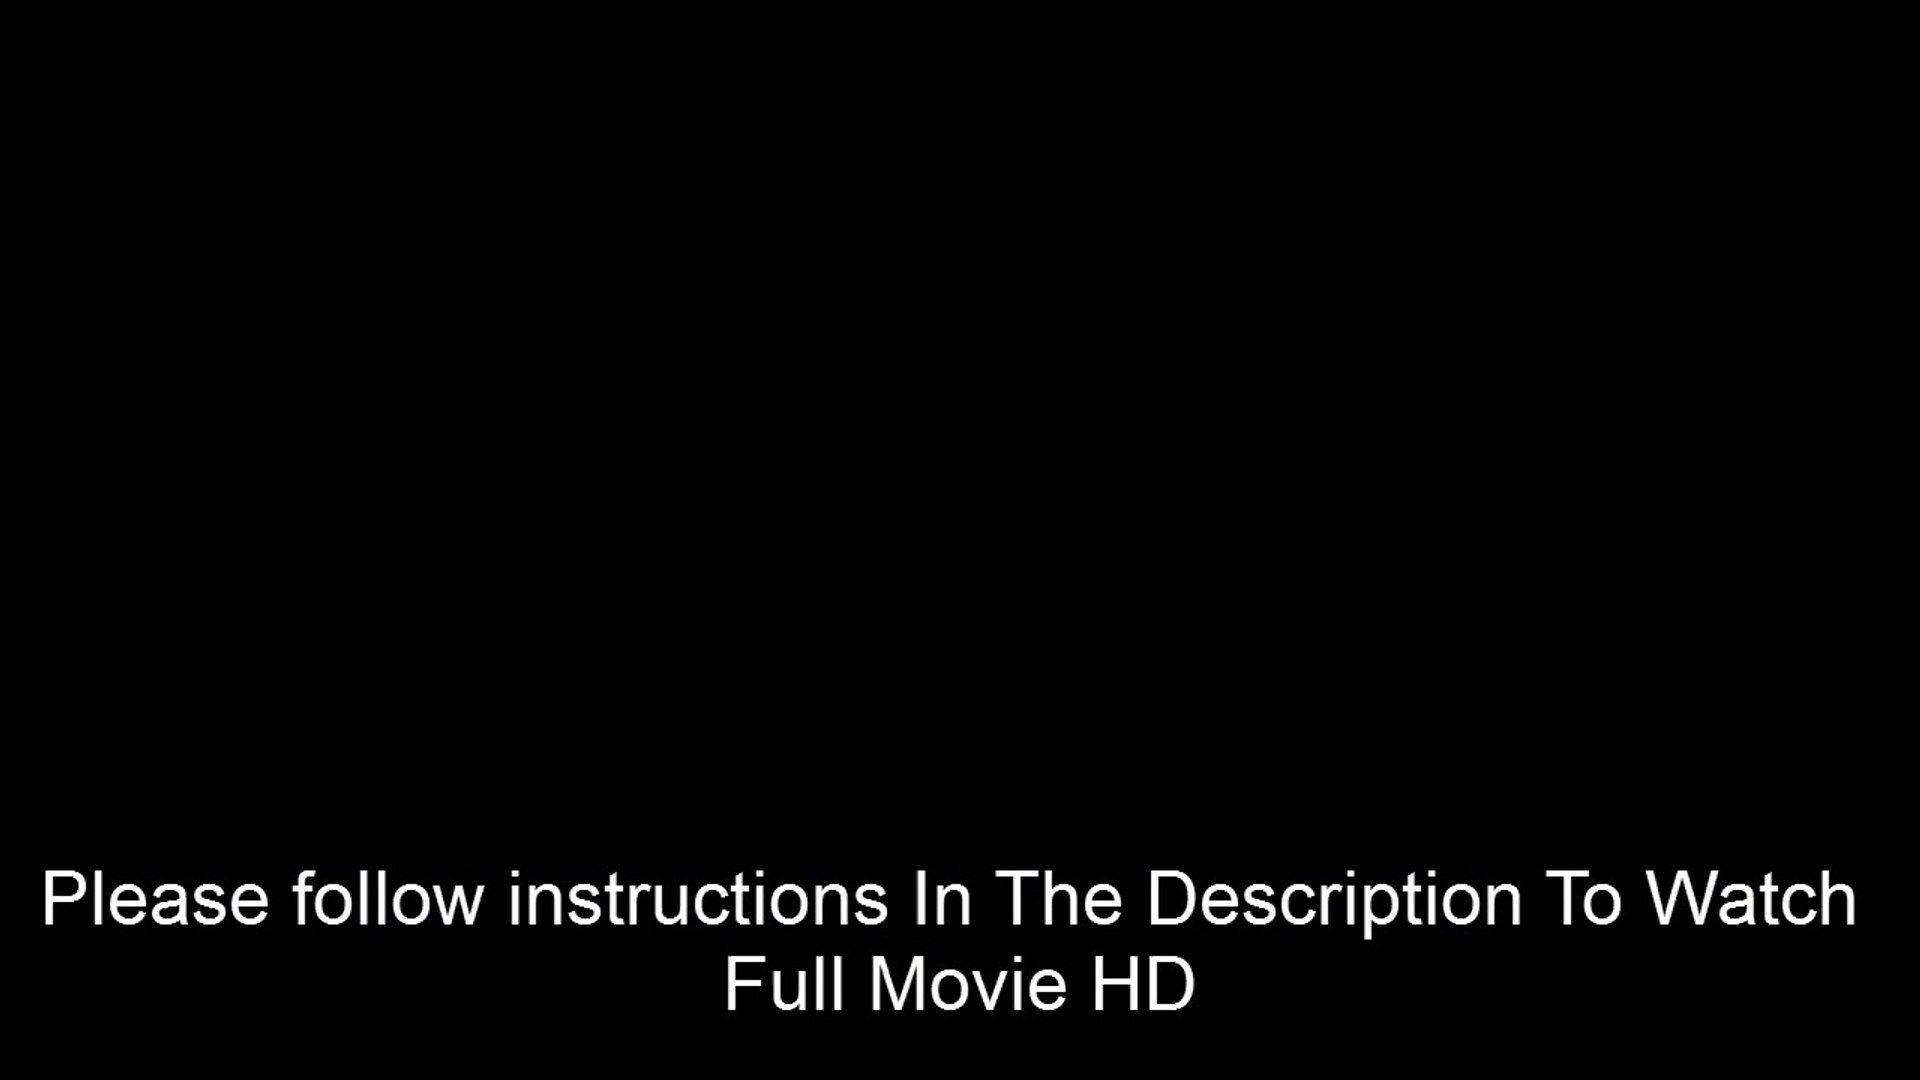 @watch Transformers: Age of Extinction Full Movie Online, @Watch Transformers: Age of Extinction Ful